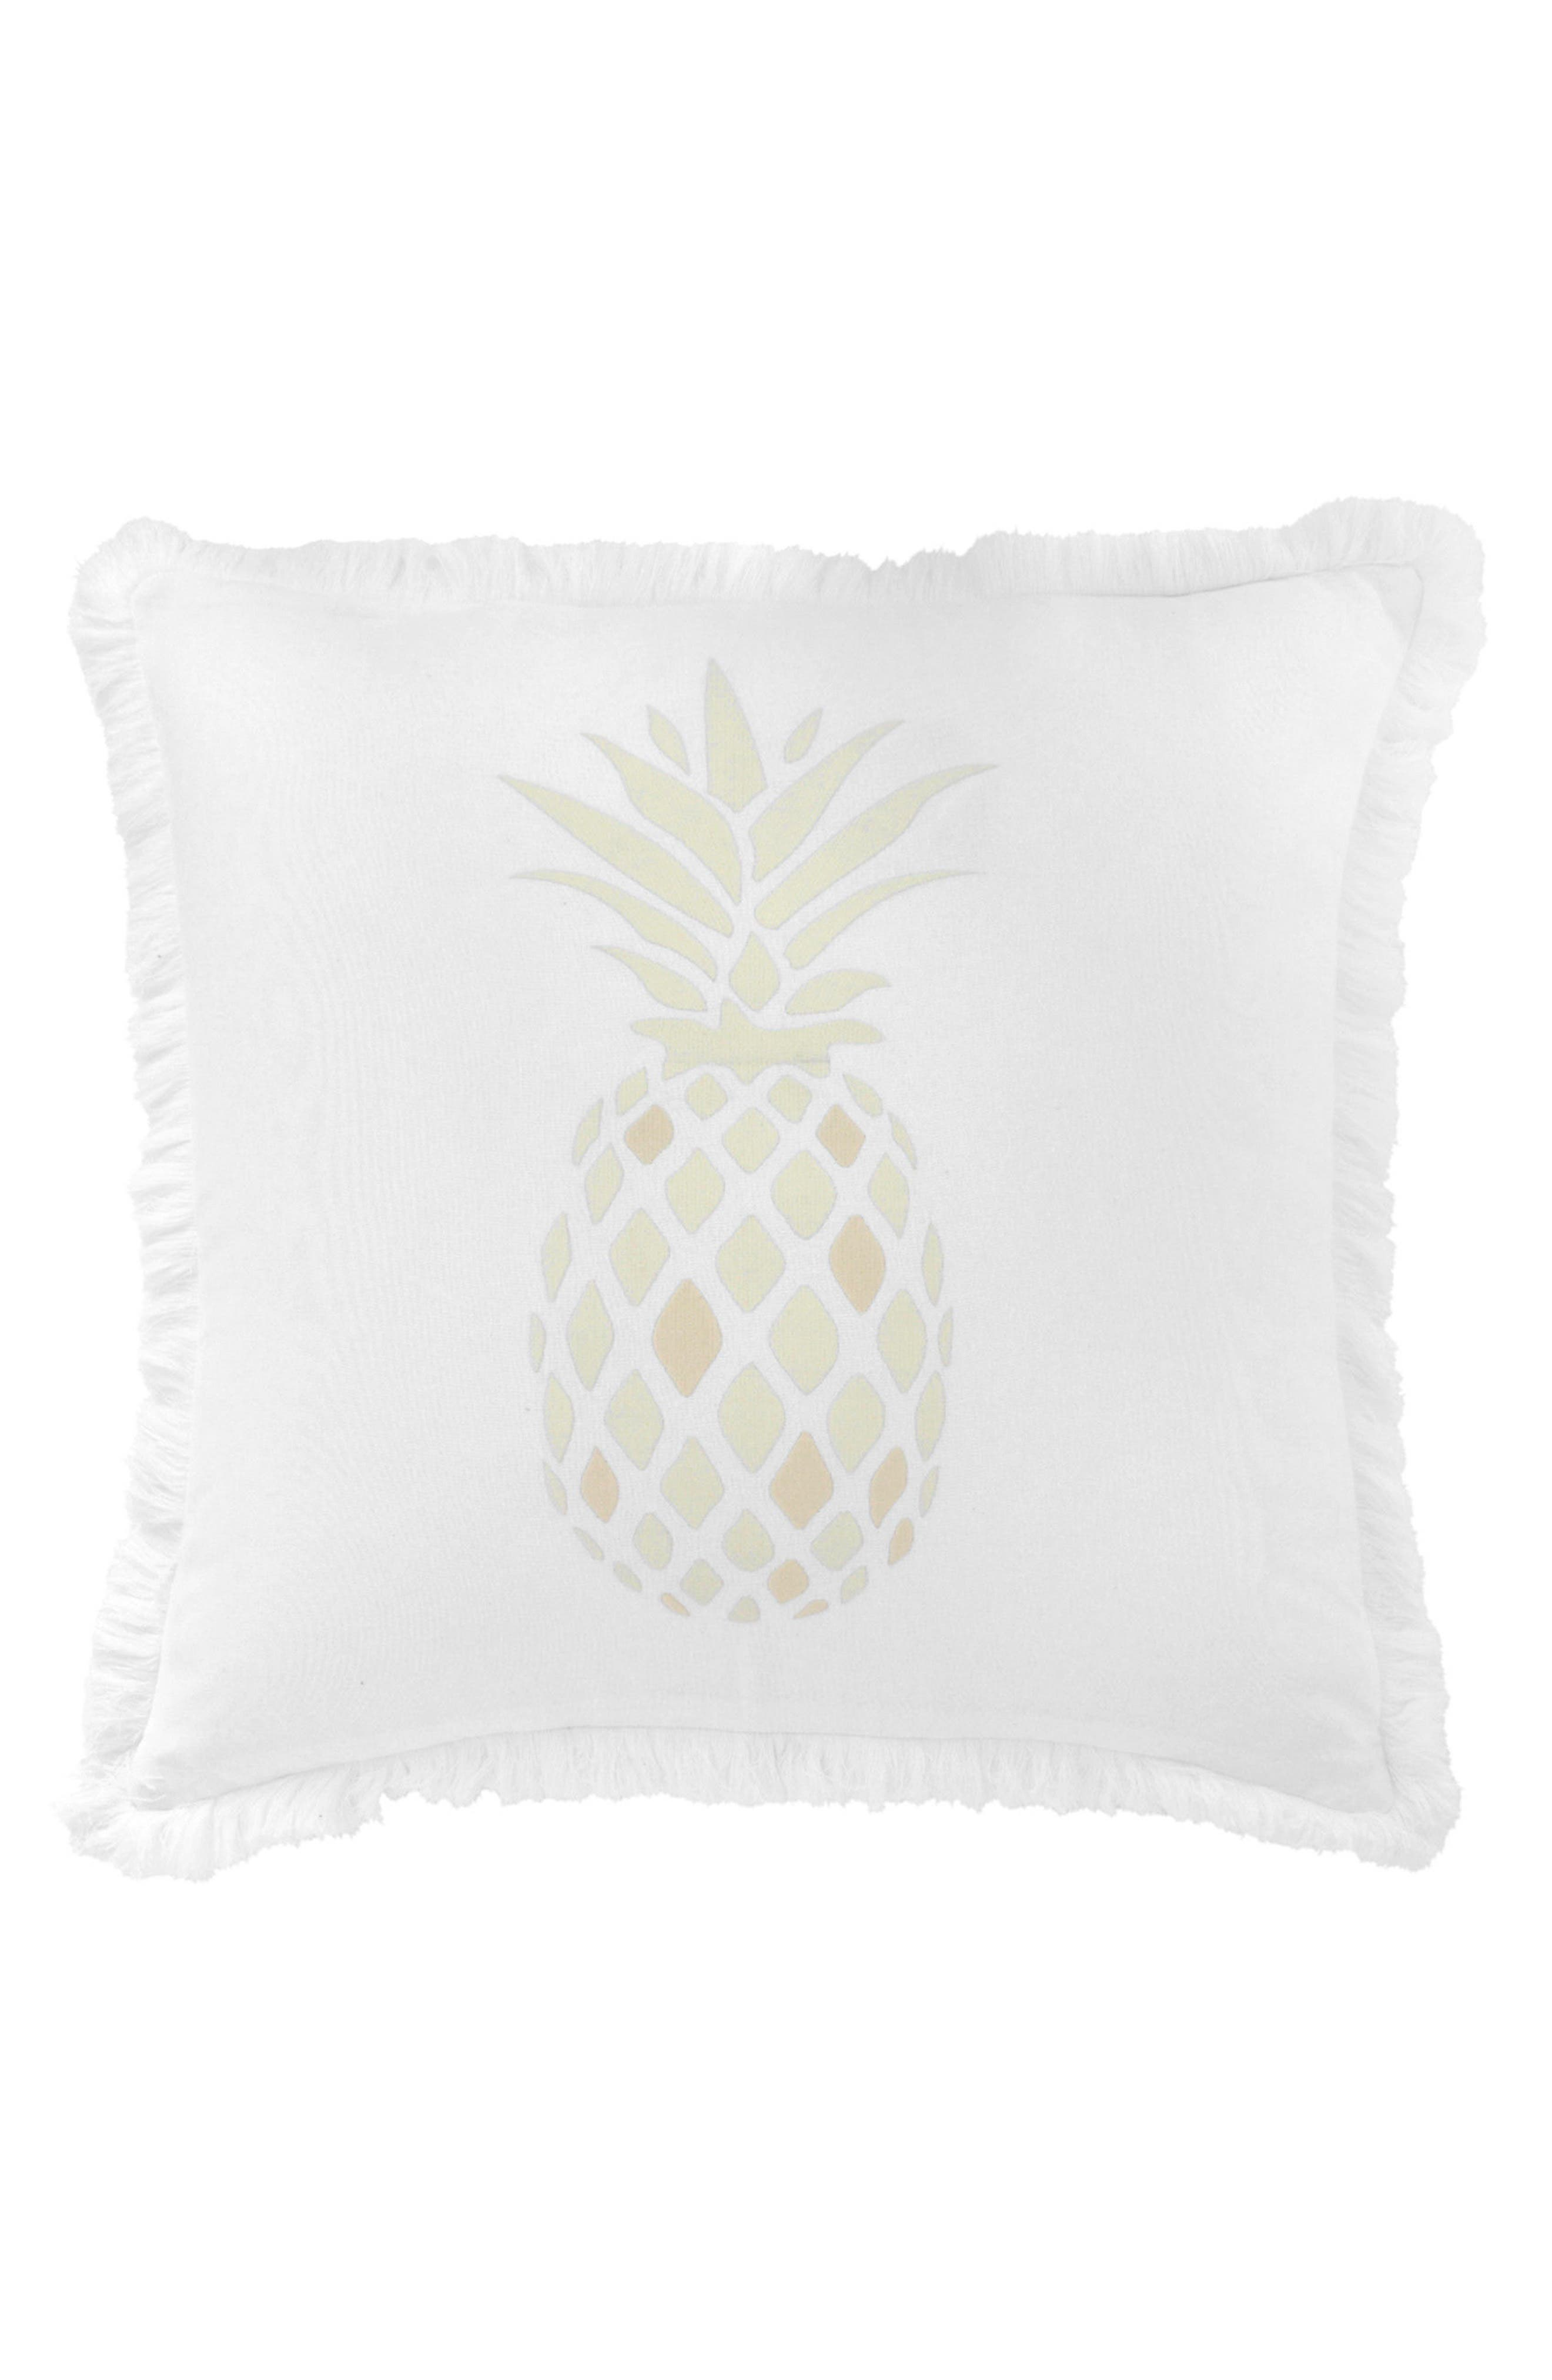 Southern Hospitality Pineapple Accent Pillow